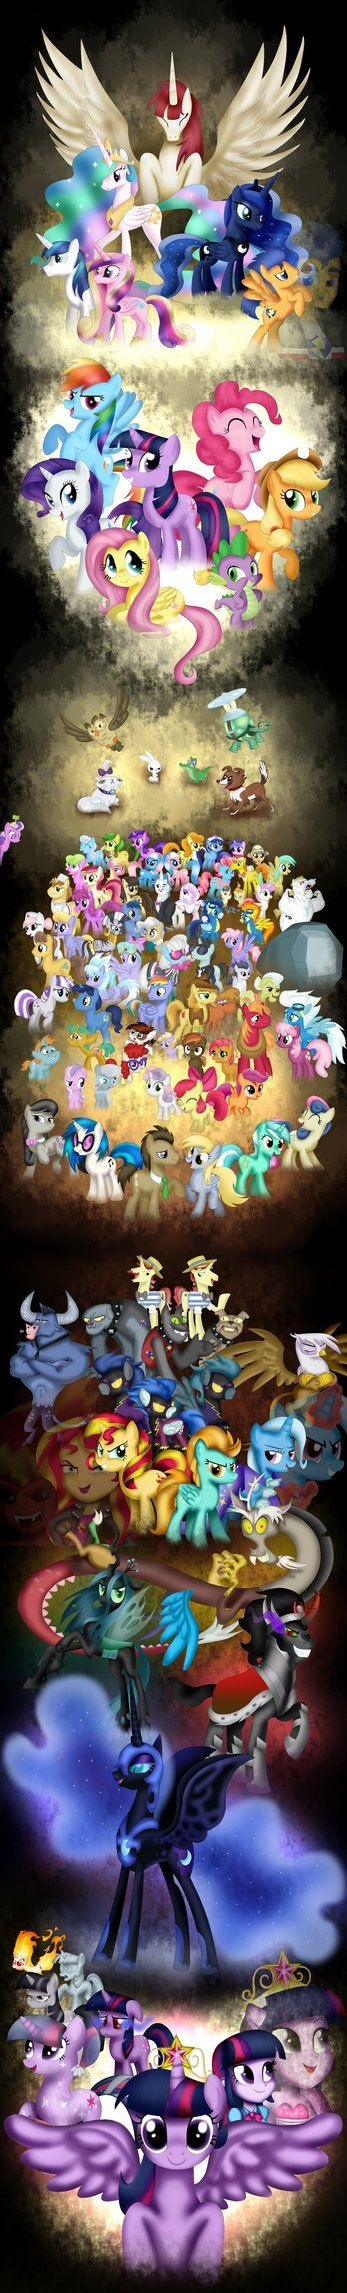 My Little Pony: Friendship is Magic by Rux--Xan Wow, just wow. This is amazing!